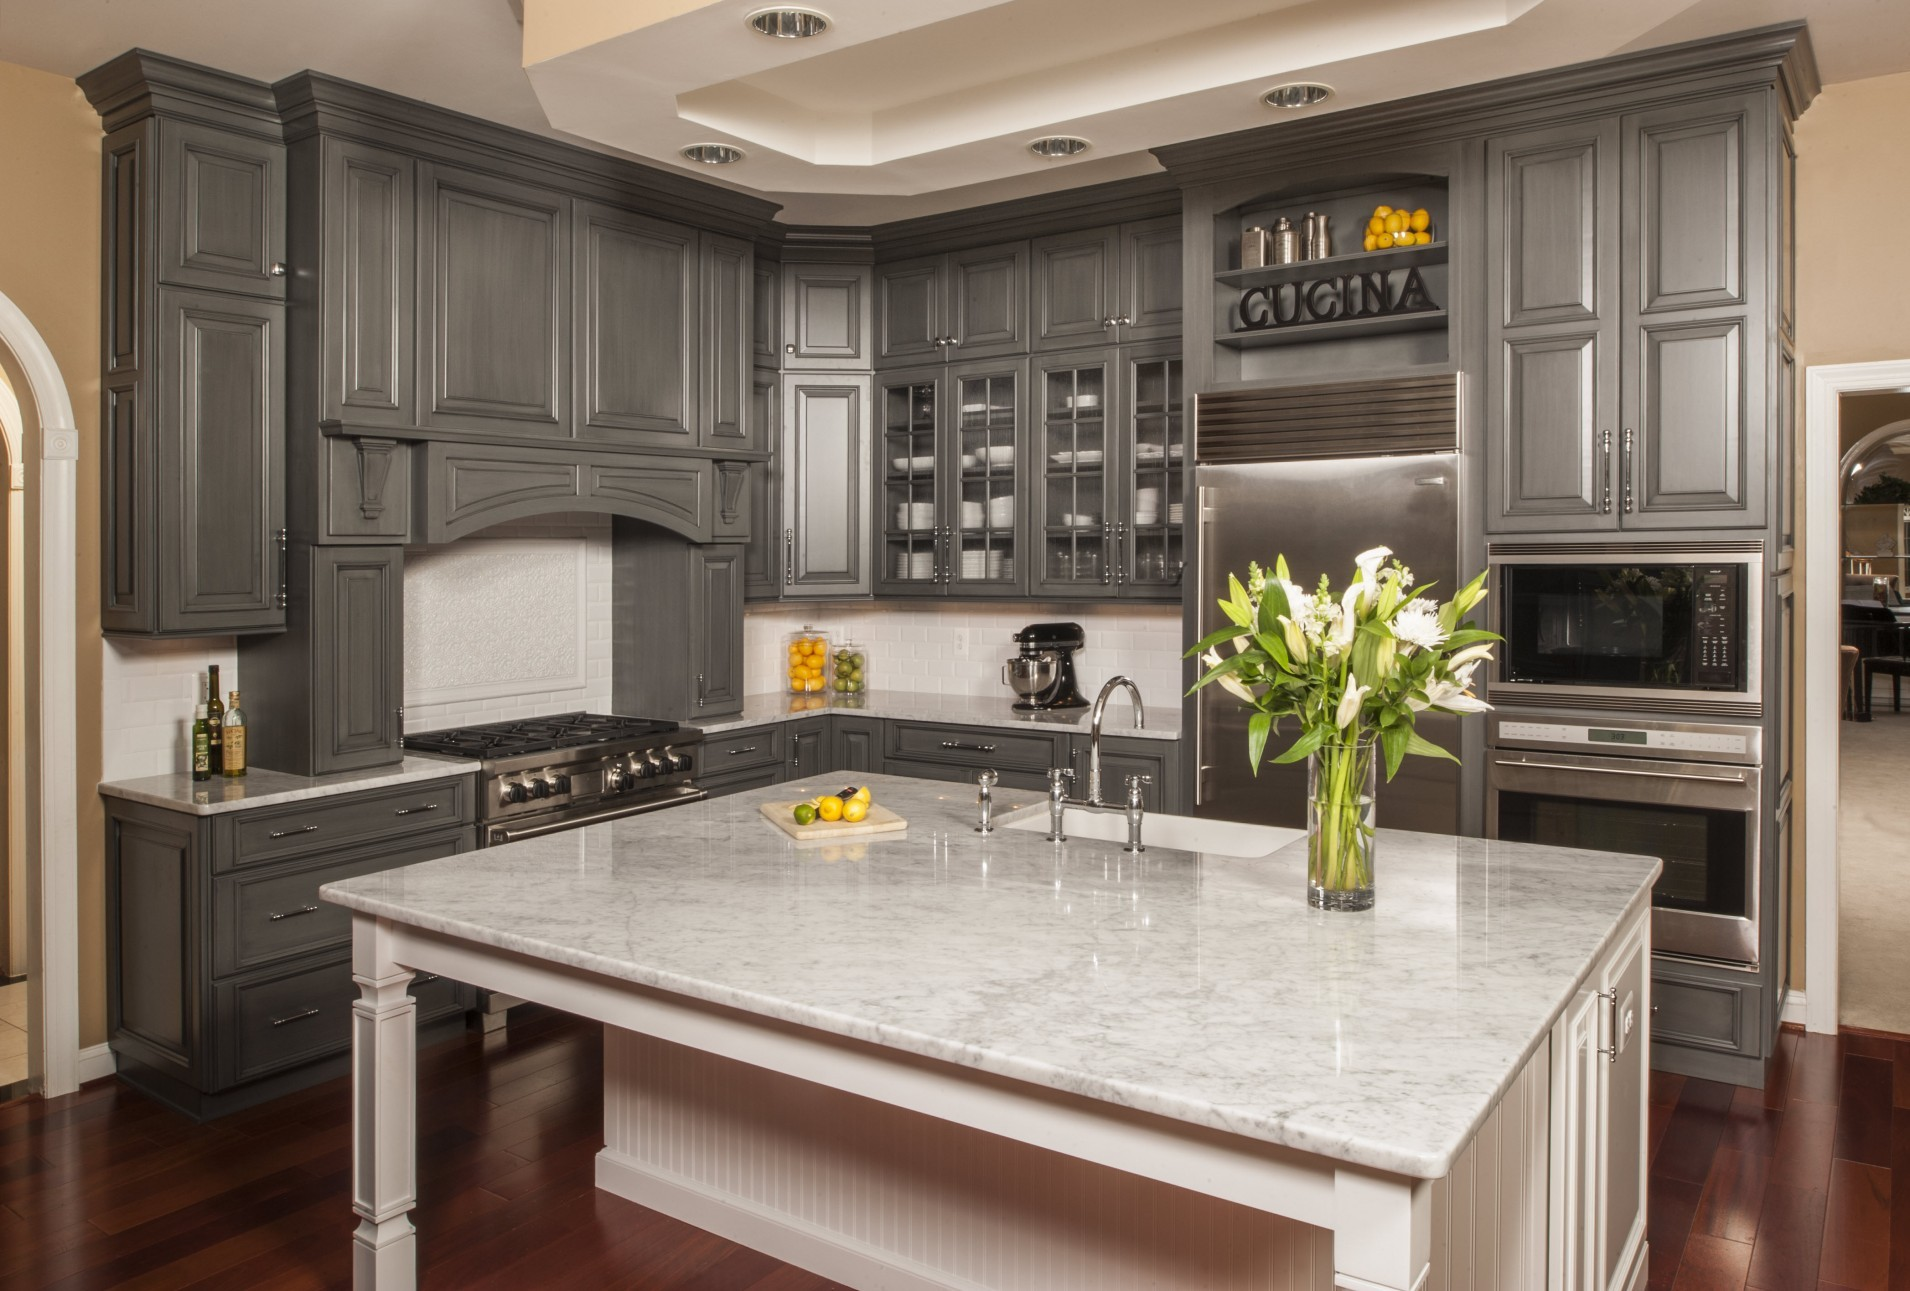 Holiday Kitchen cabinets in Morton Illinois